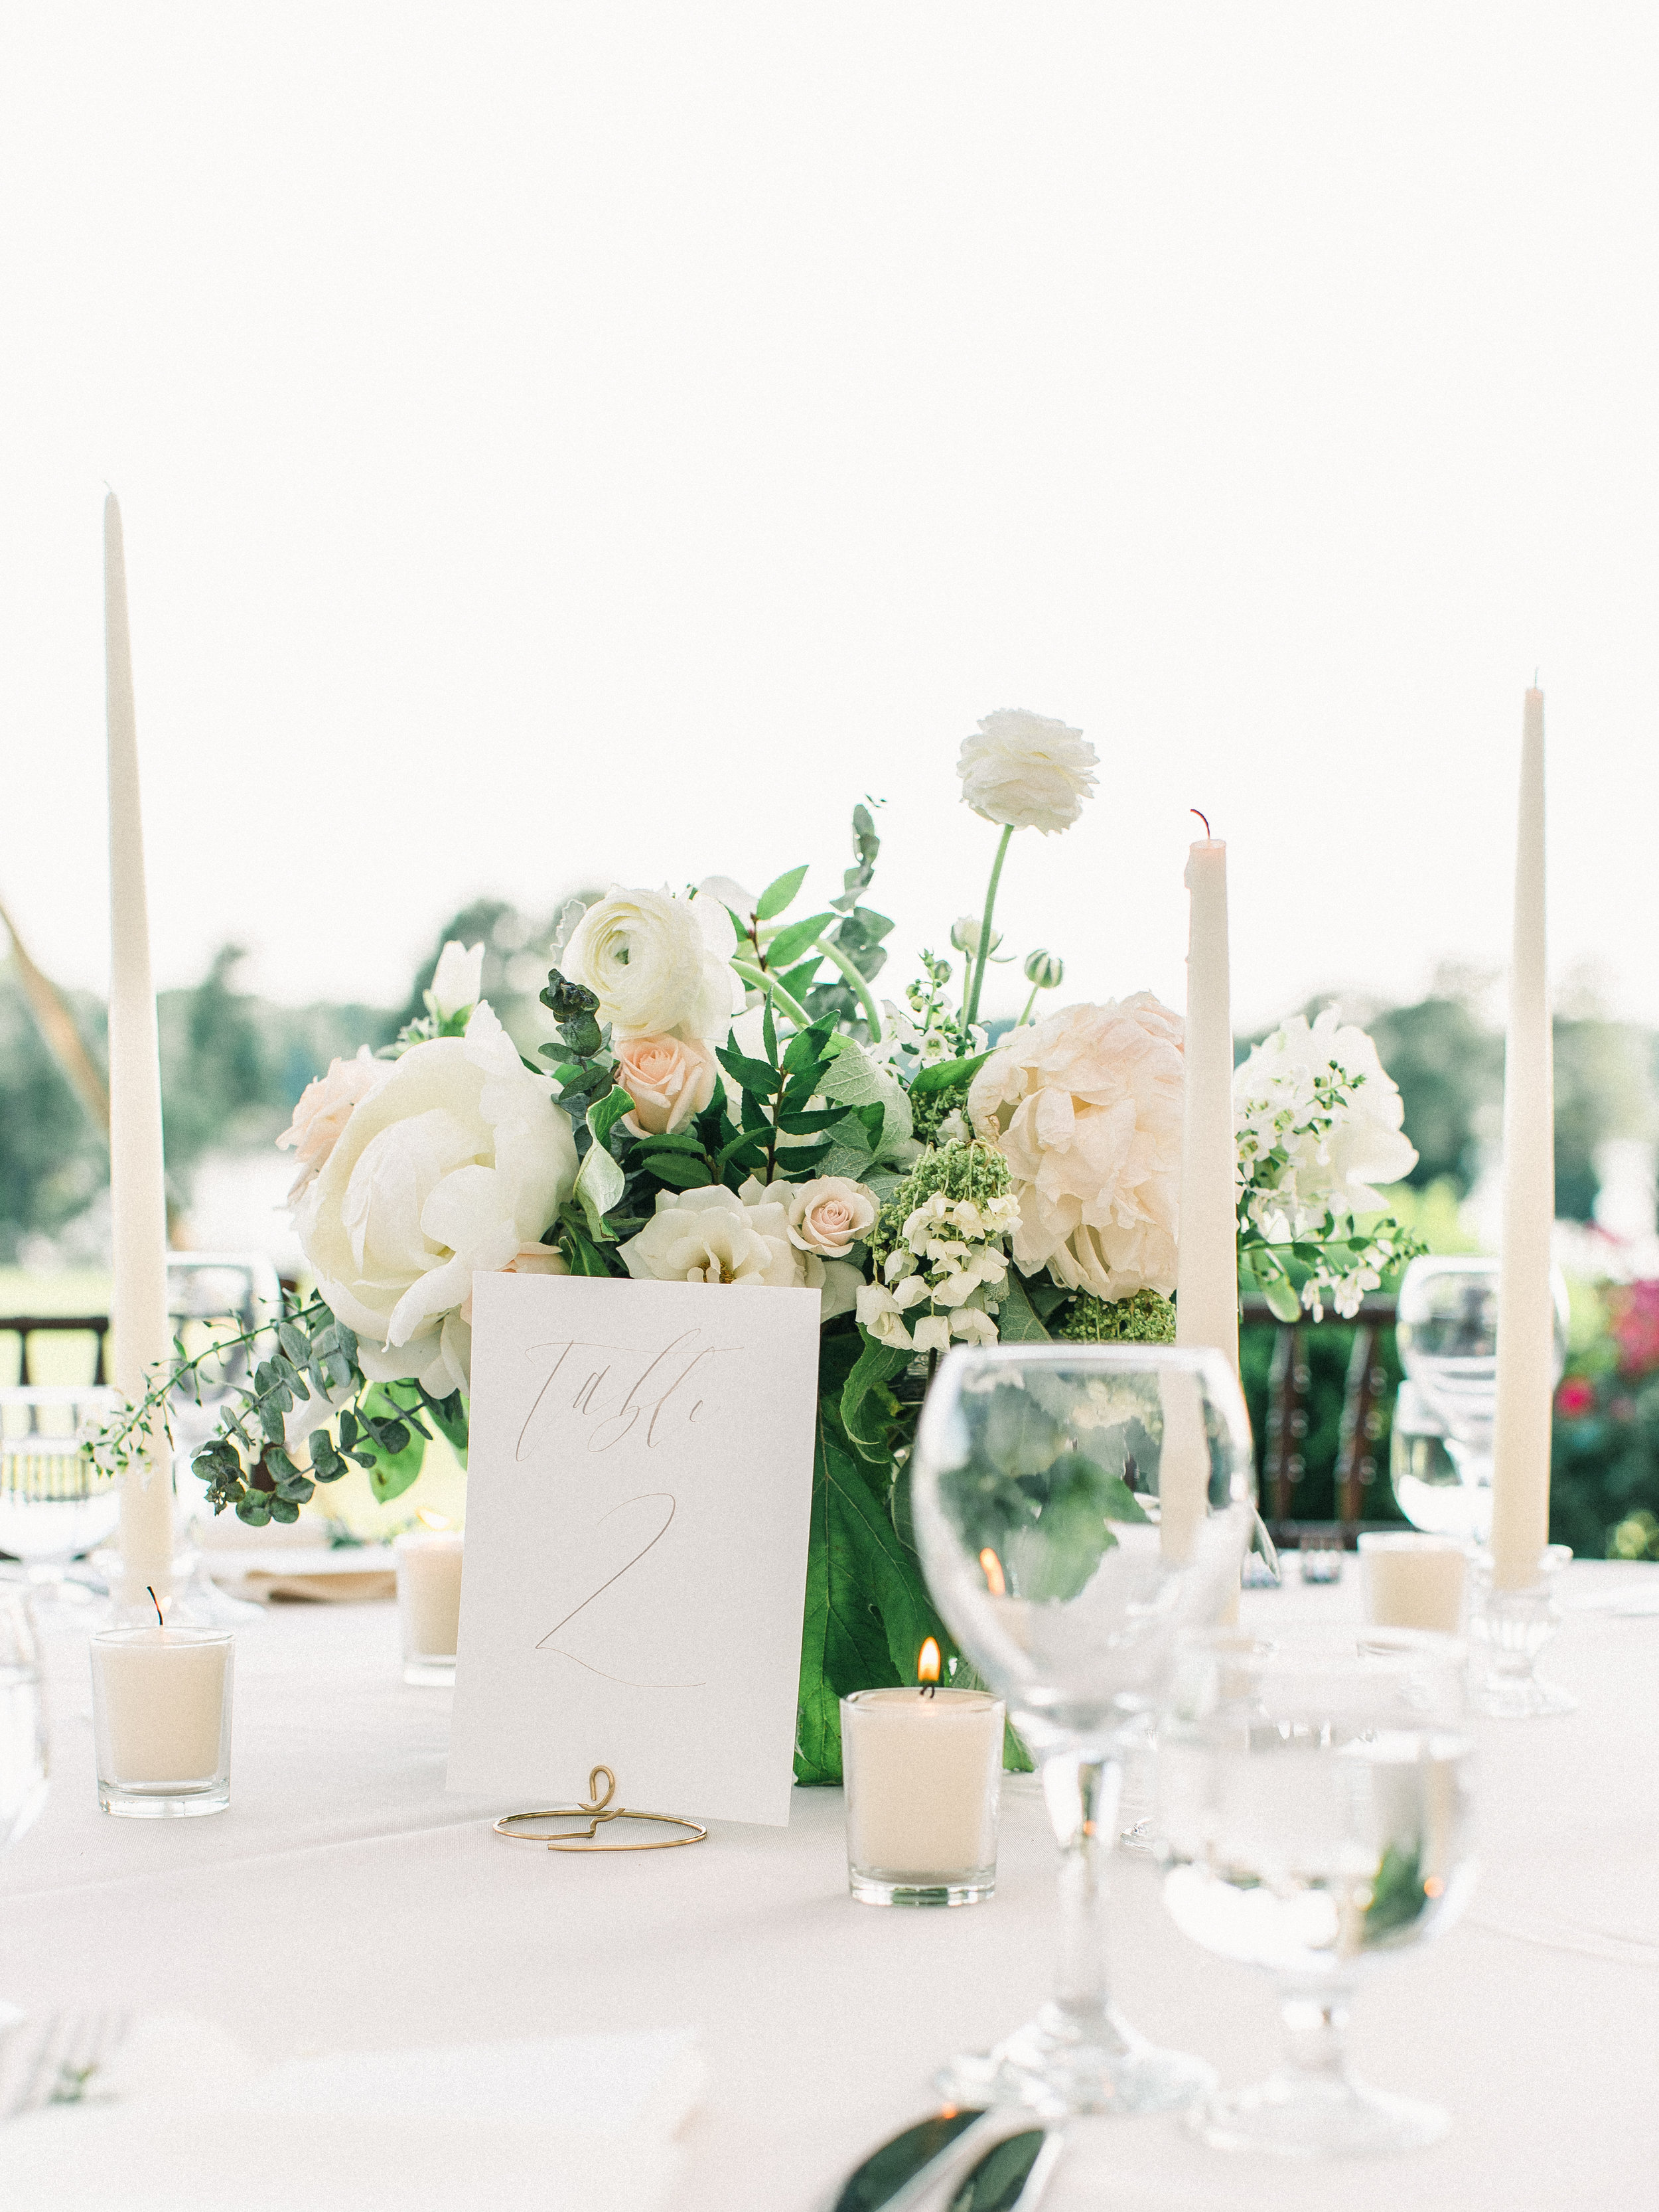 Wedding Table Numbers   Shotgunning for Love Letters